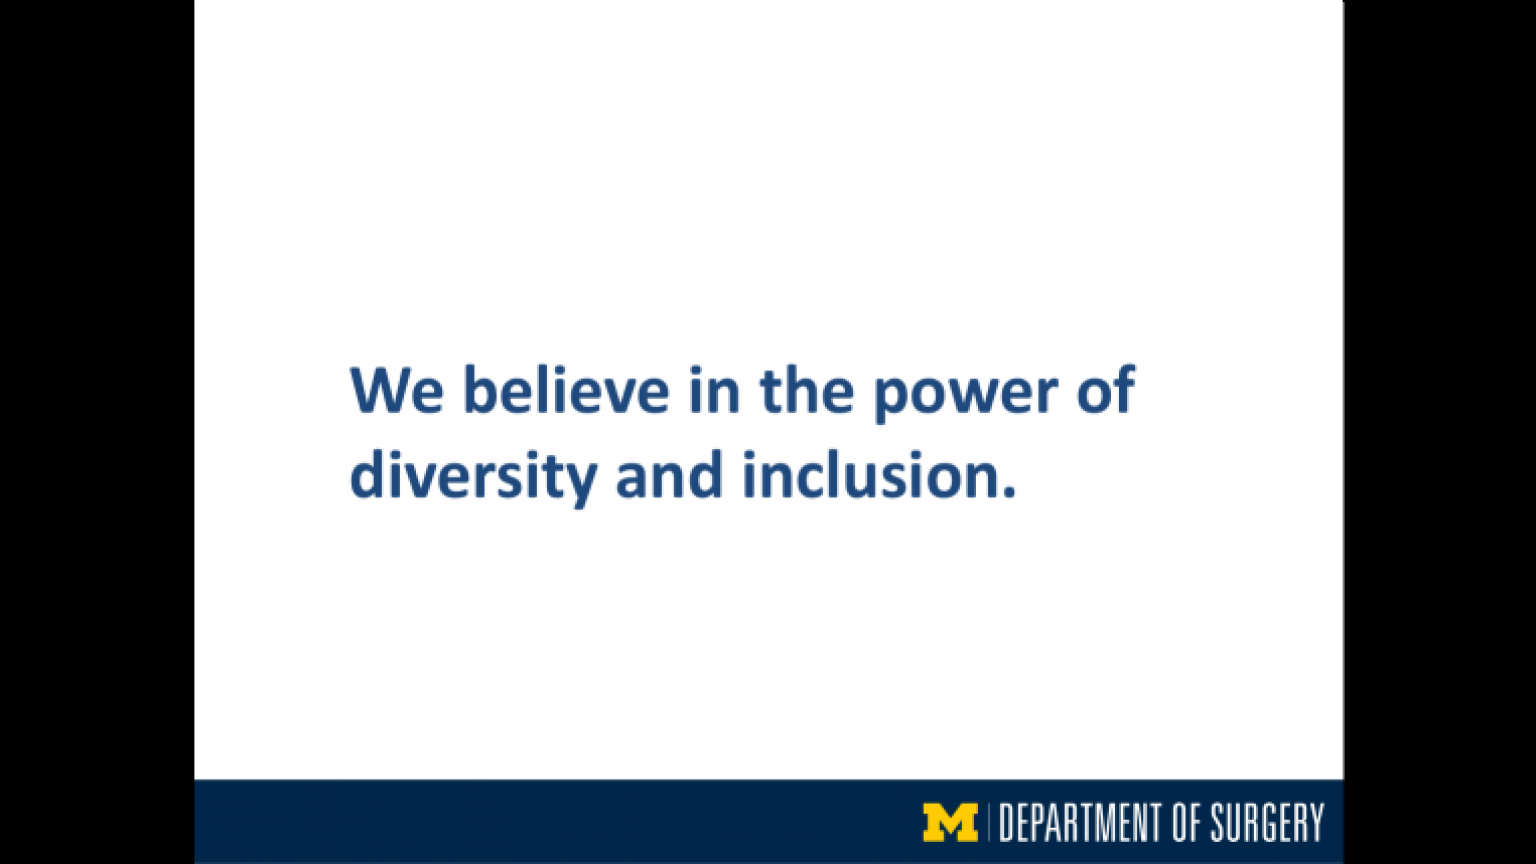 """""""We believe in the power of diversity and inclusion"""" - nineteenth slide of """"This Is What We Stand For"""" presentation"""